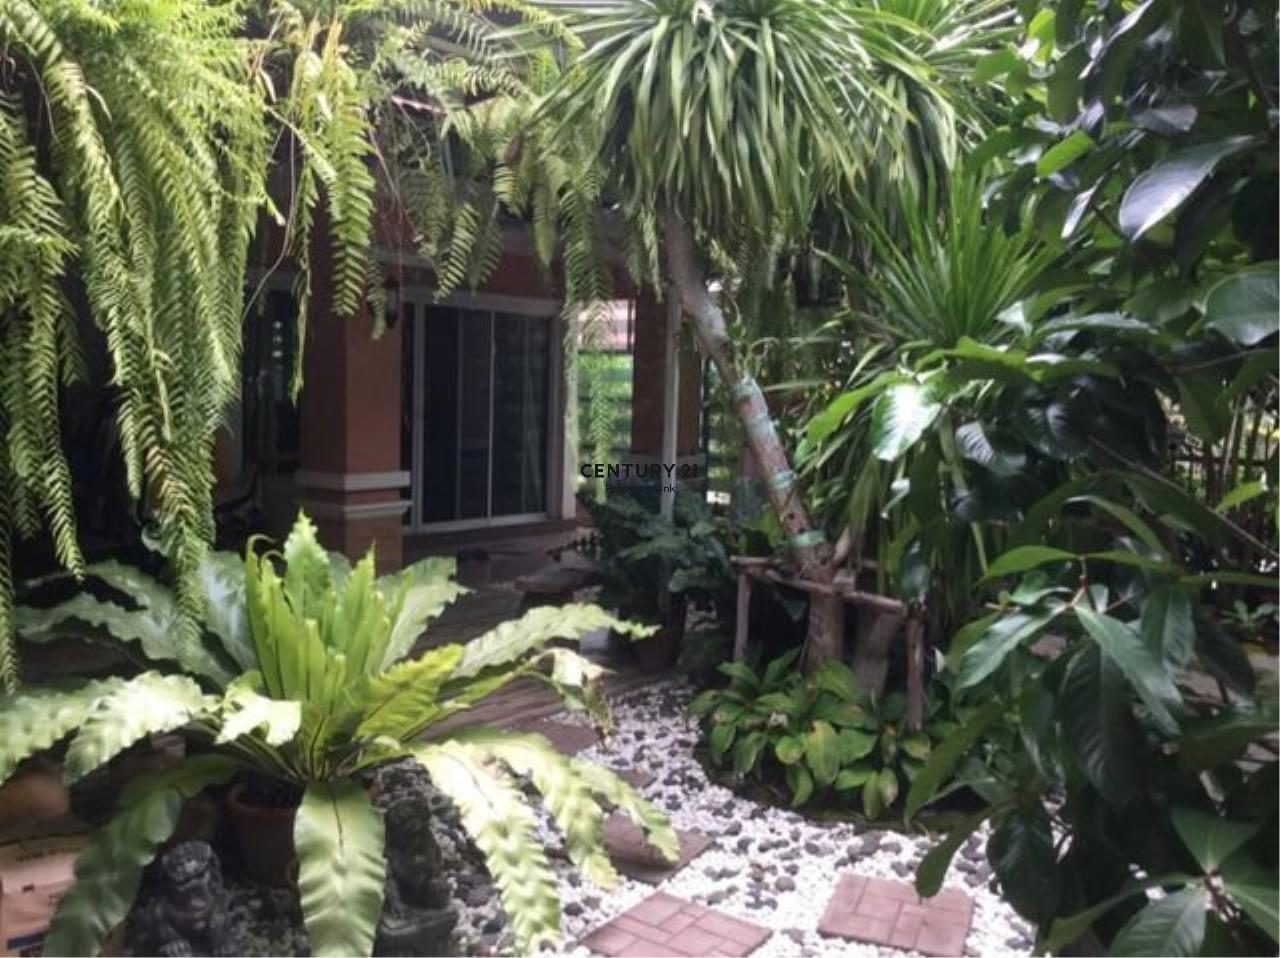 Century21 Property Link Agency's 38-HH-61063 Single House for sale @Nonthaburi  6